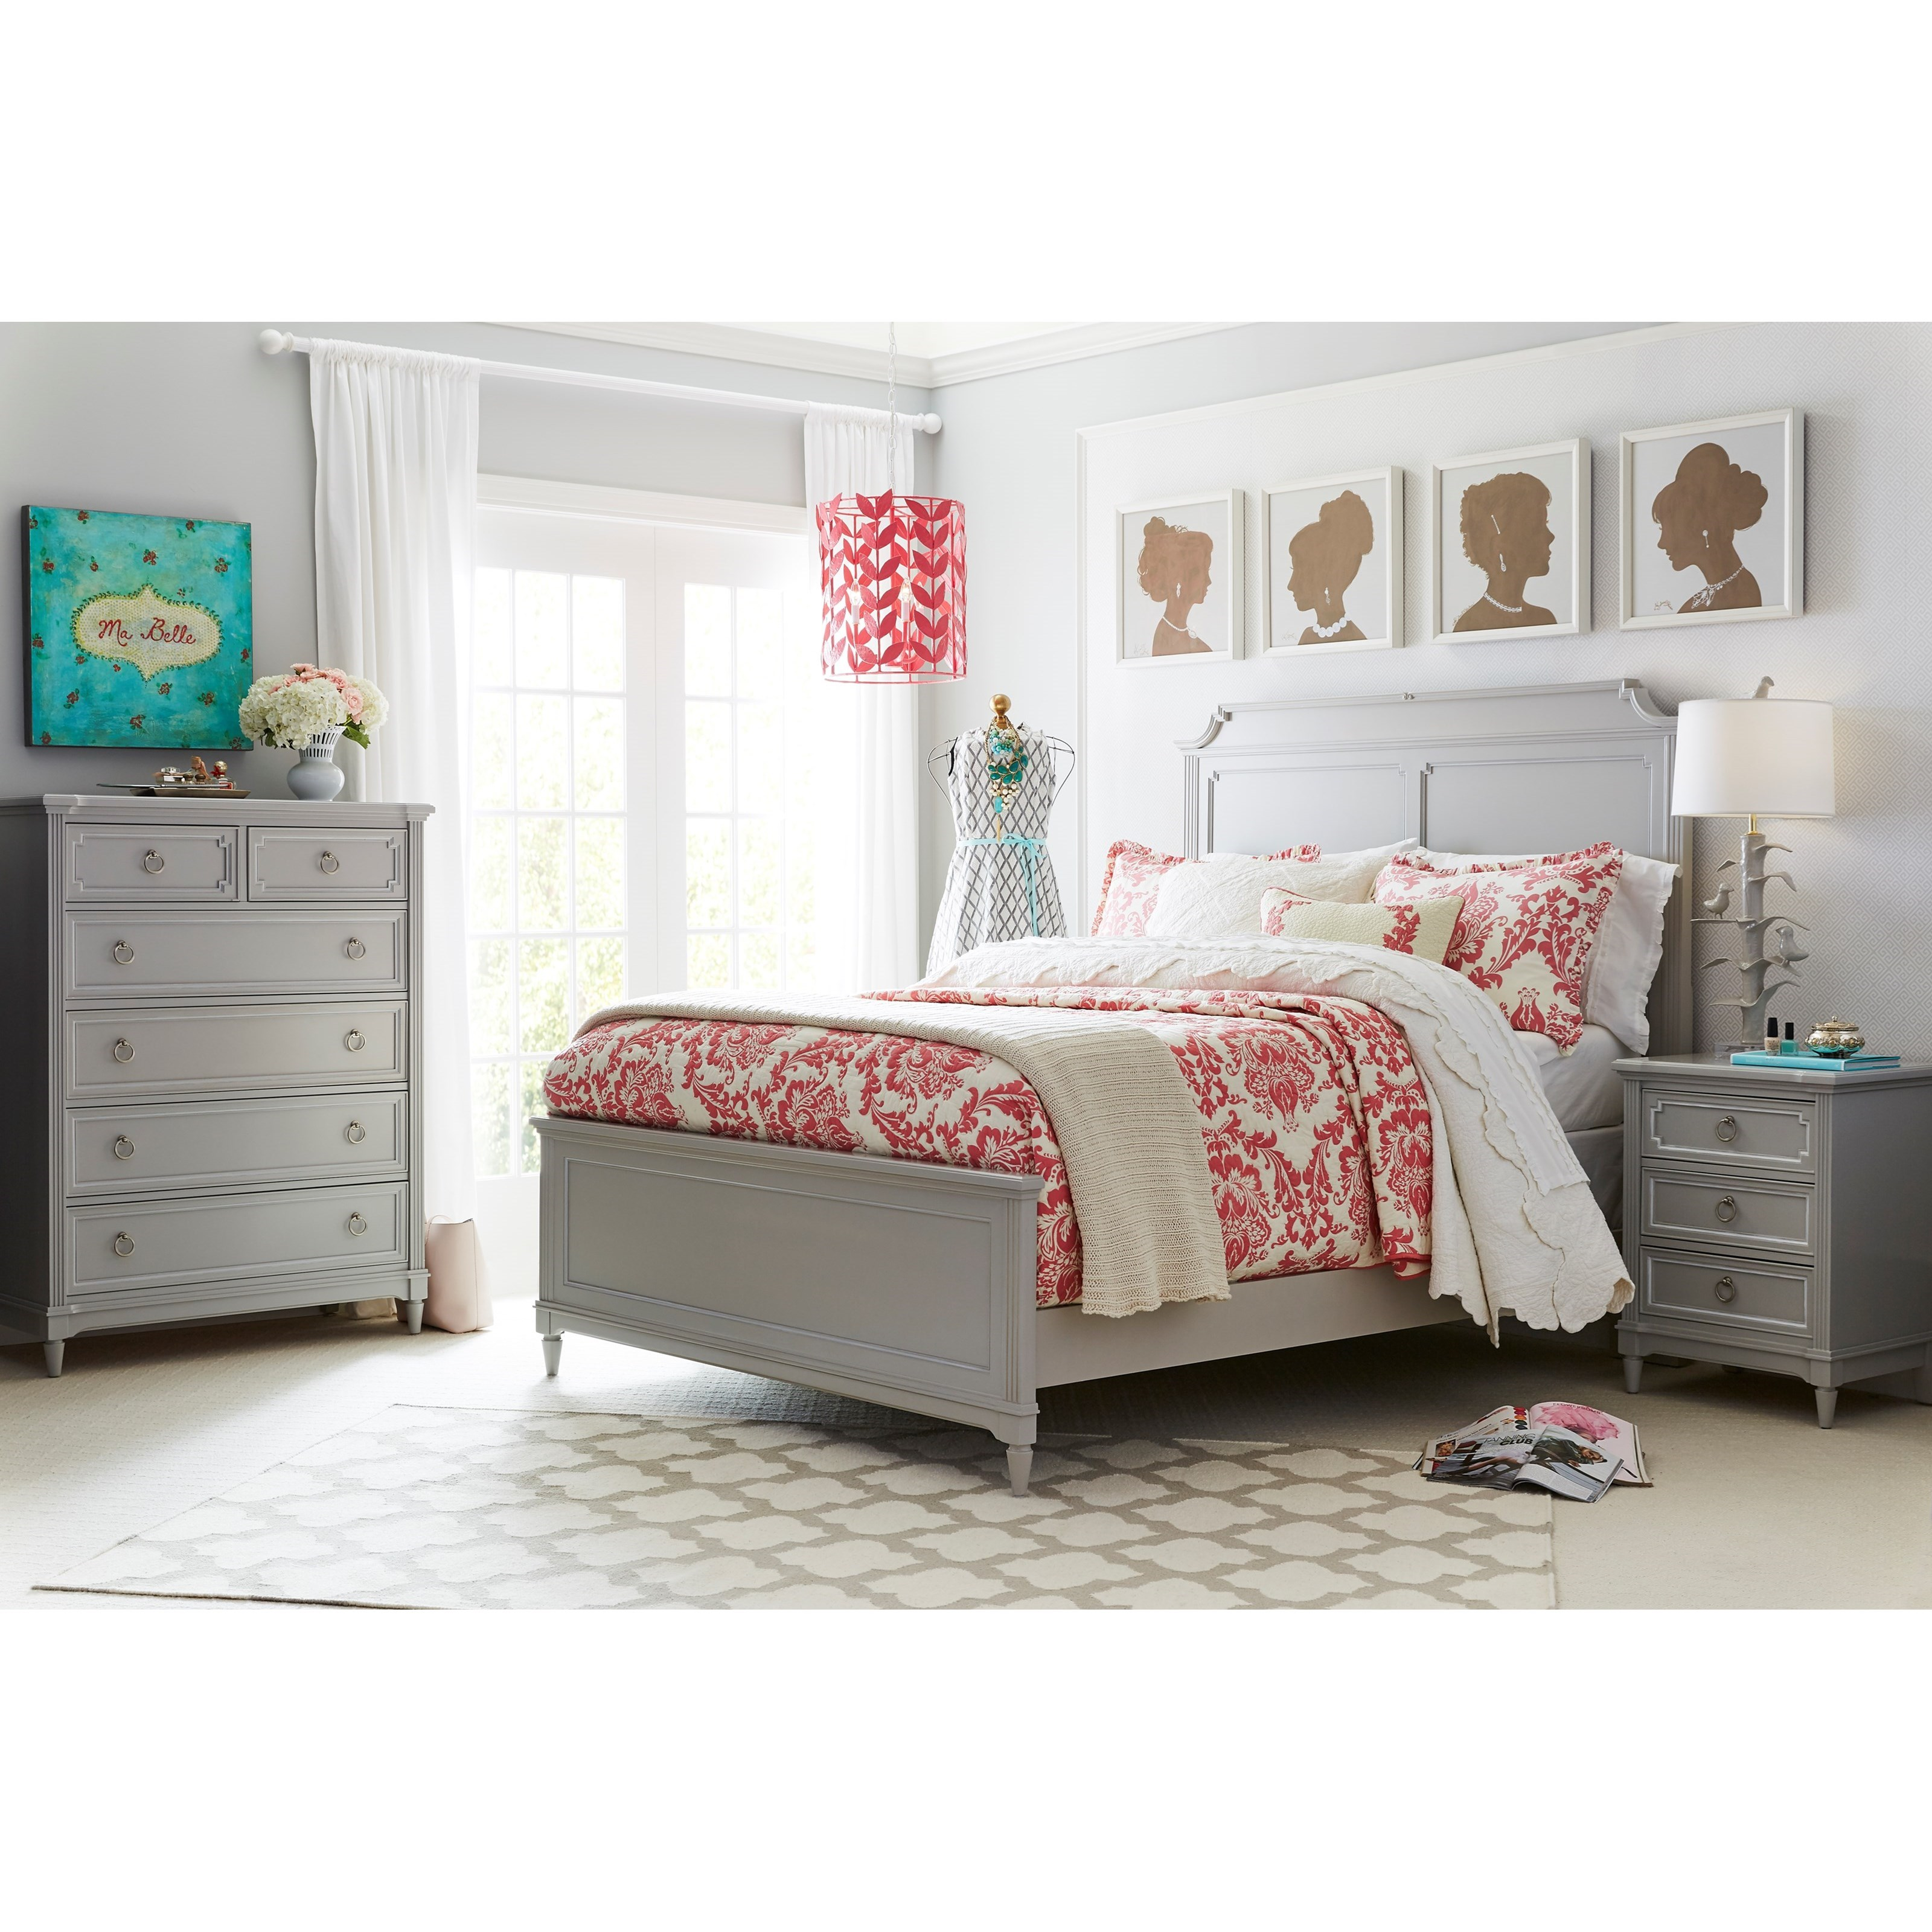 Stone & Leigh Furniture Clementine Court Queen Bedroom Group - Item Number: 537-53 Q Bedroom Group 1